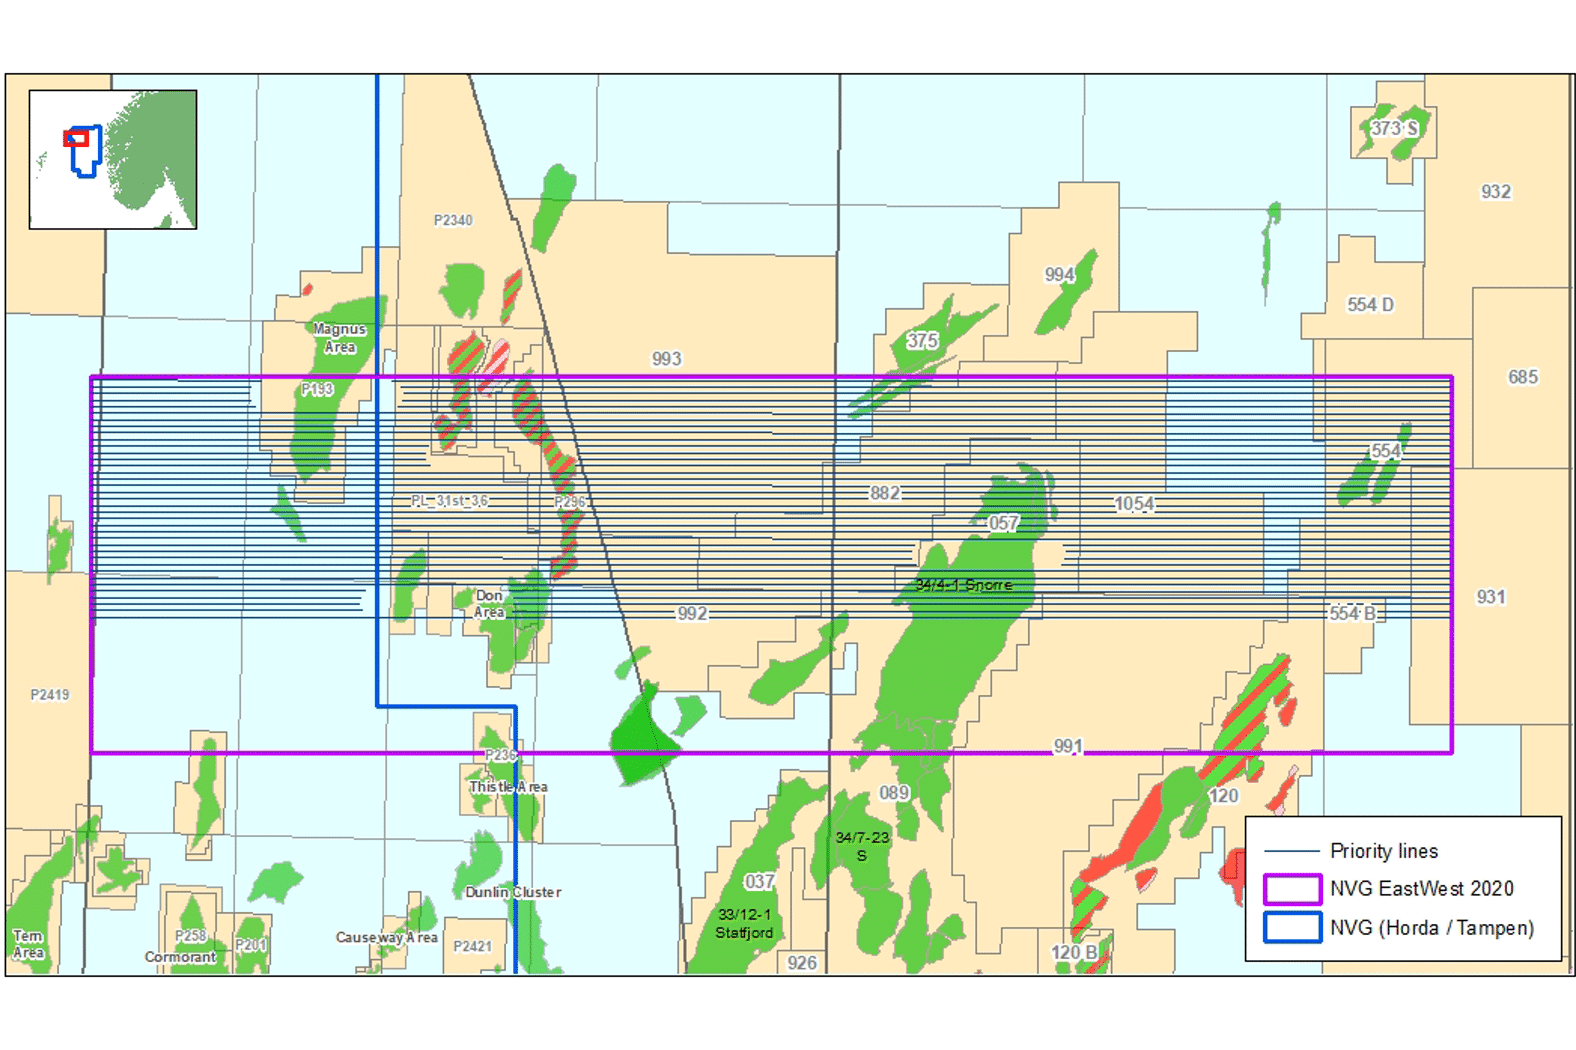 CGG adds second Azimuth to Northern Viking Graben multi-client survey